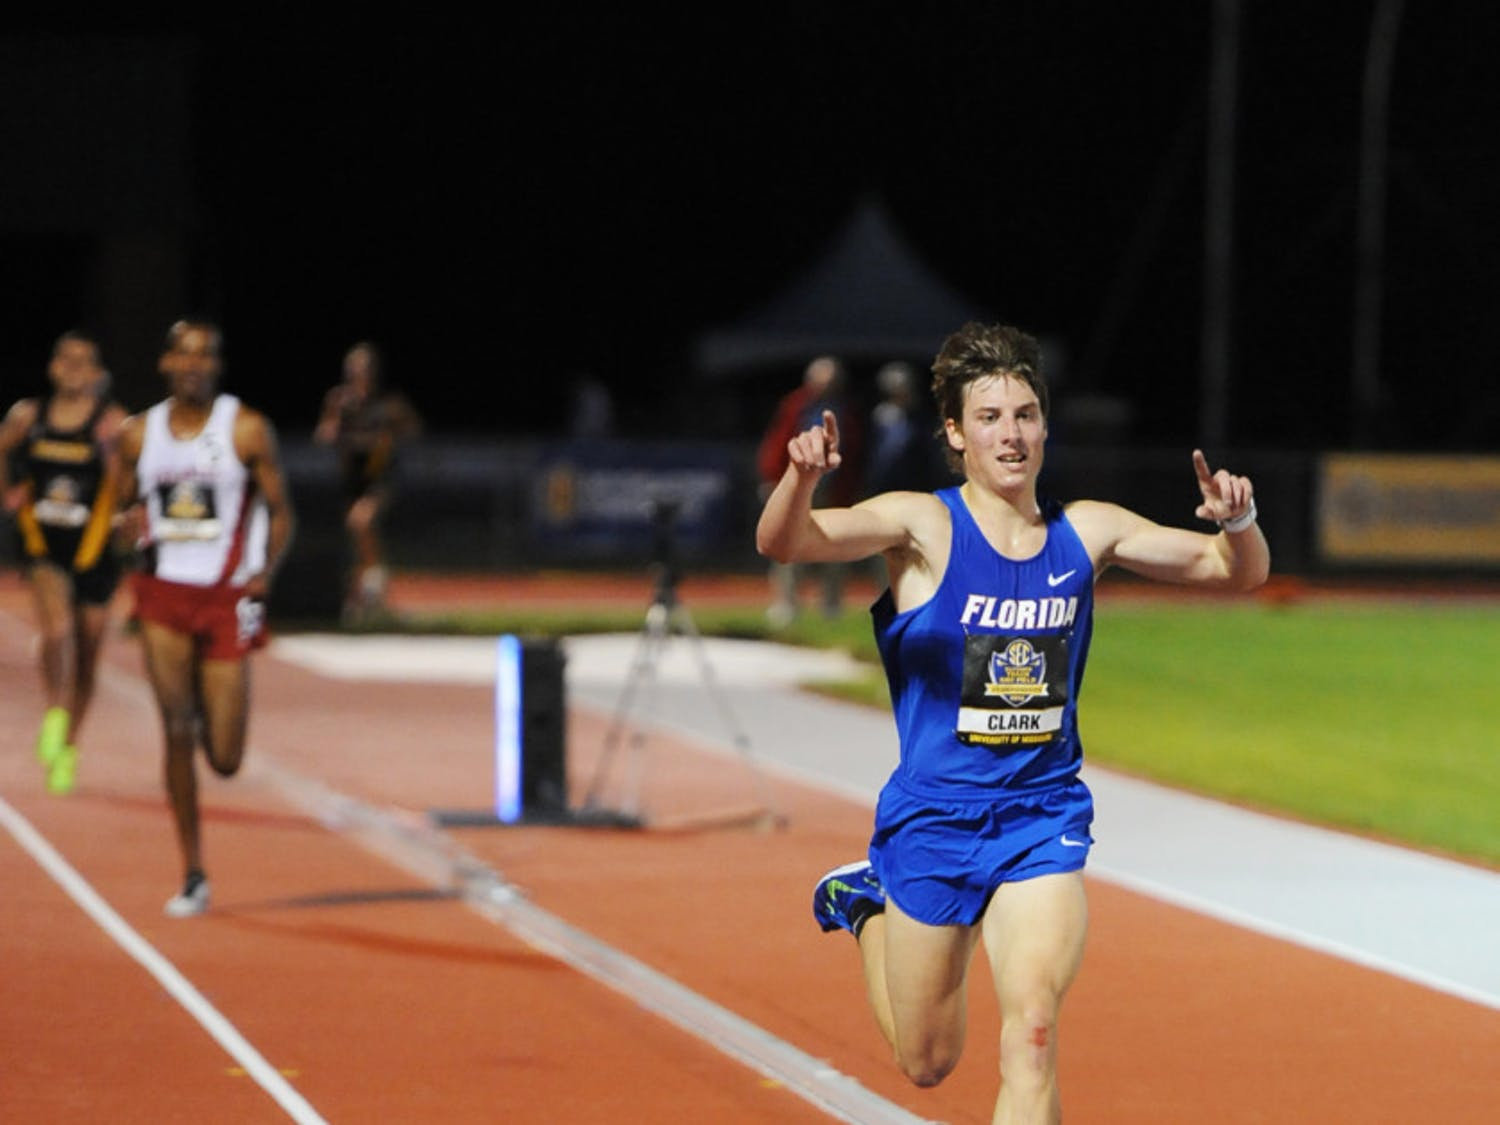 Jimmy Clark celebrates winning the men's 10,000-meter at the SEC Outdoor Championships in Columbia, Mo., on May 10. Clark was named SEC Men's Freshman Runner of the Year on Friday.